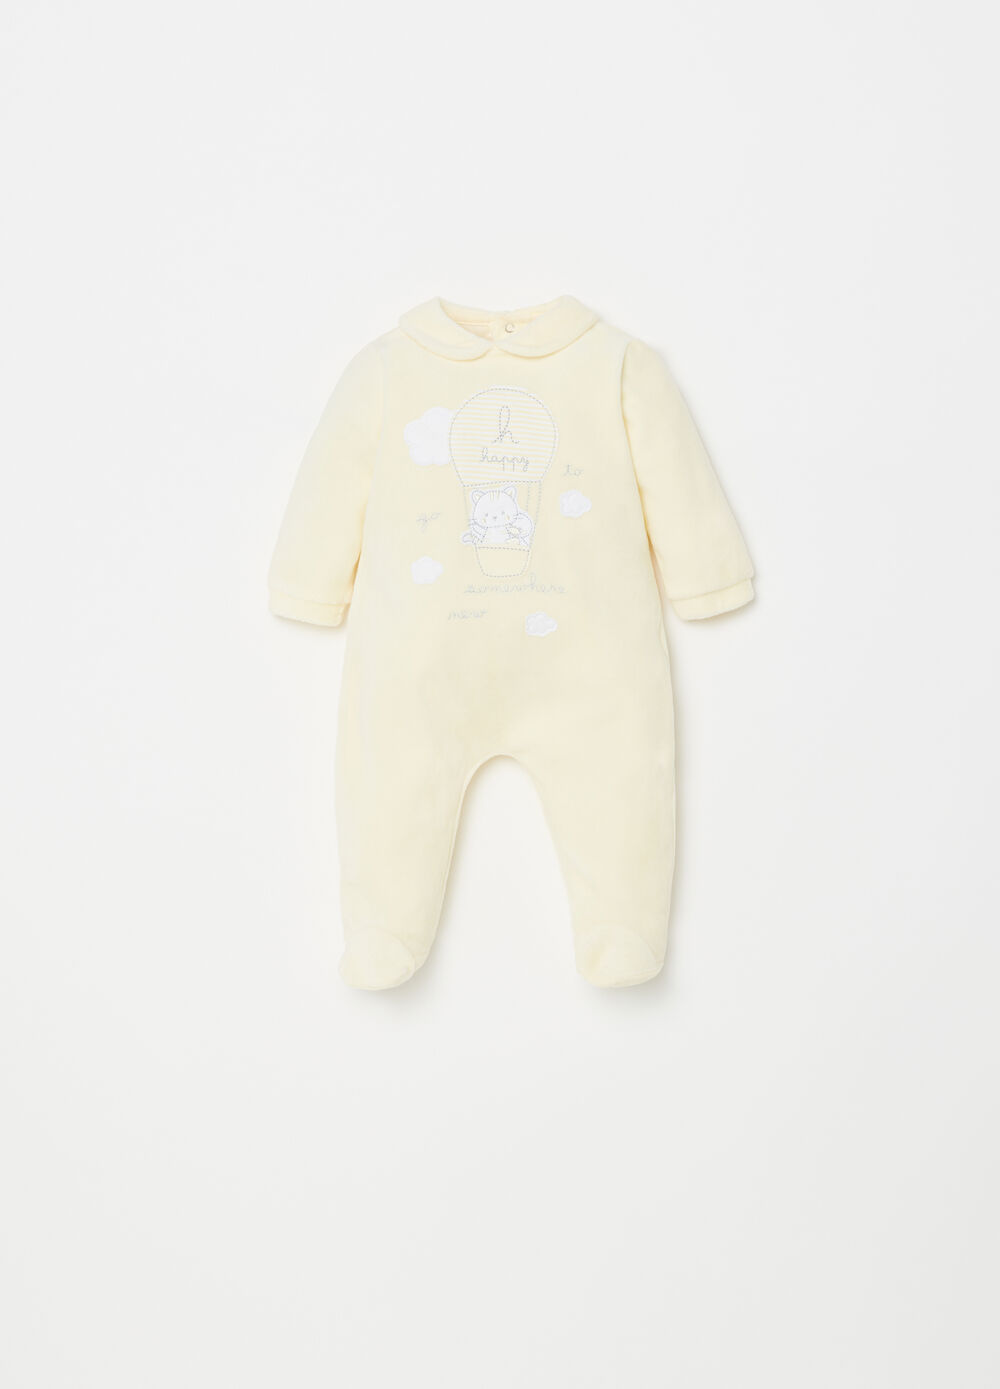 BCI chenille onesie with feet and kitten